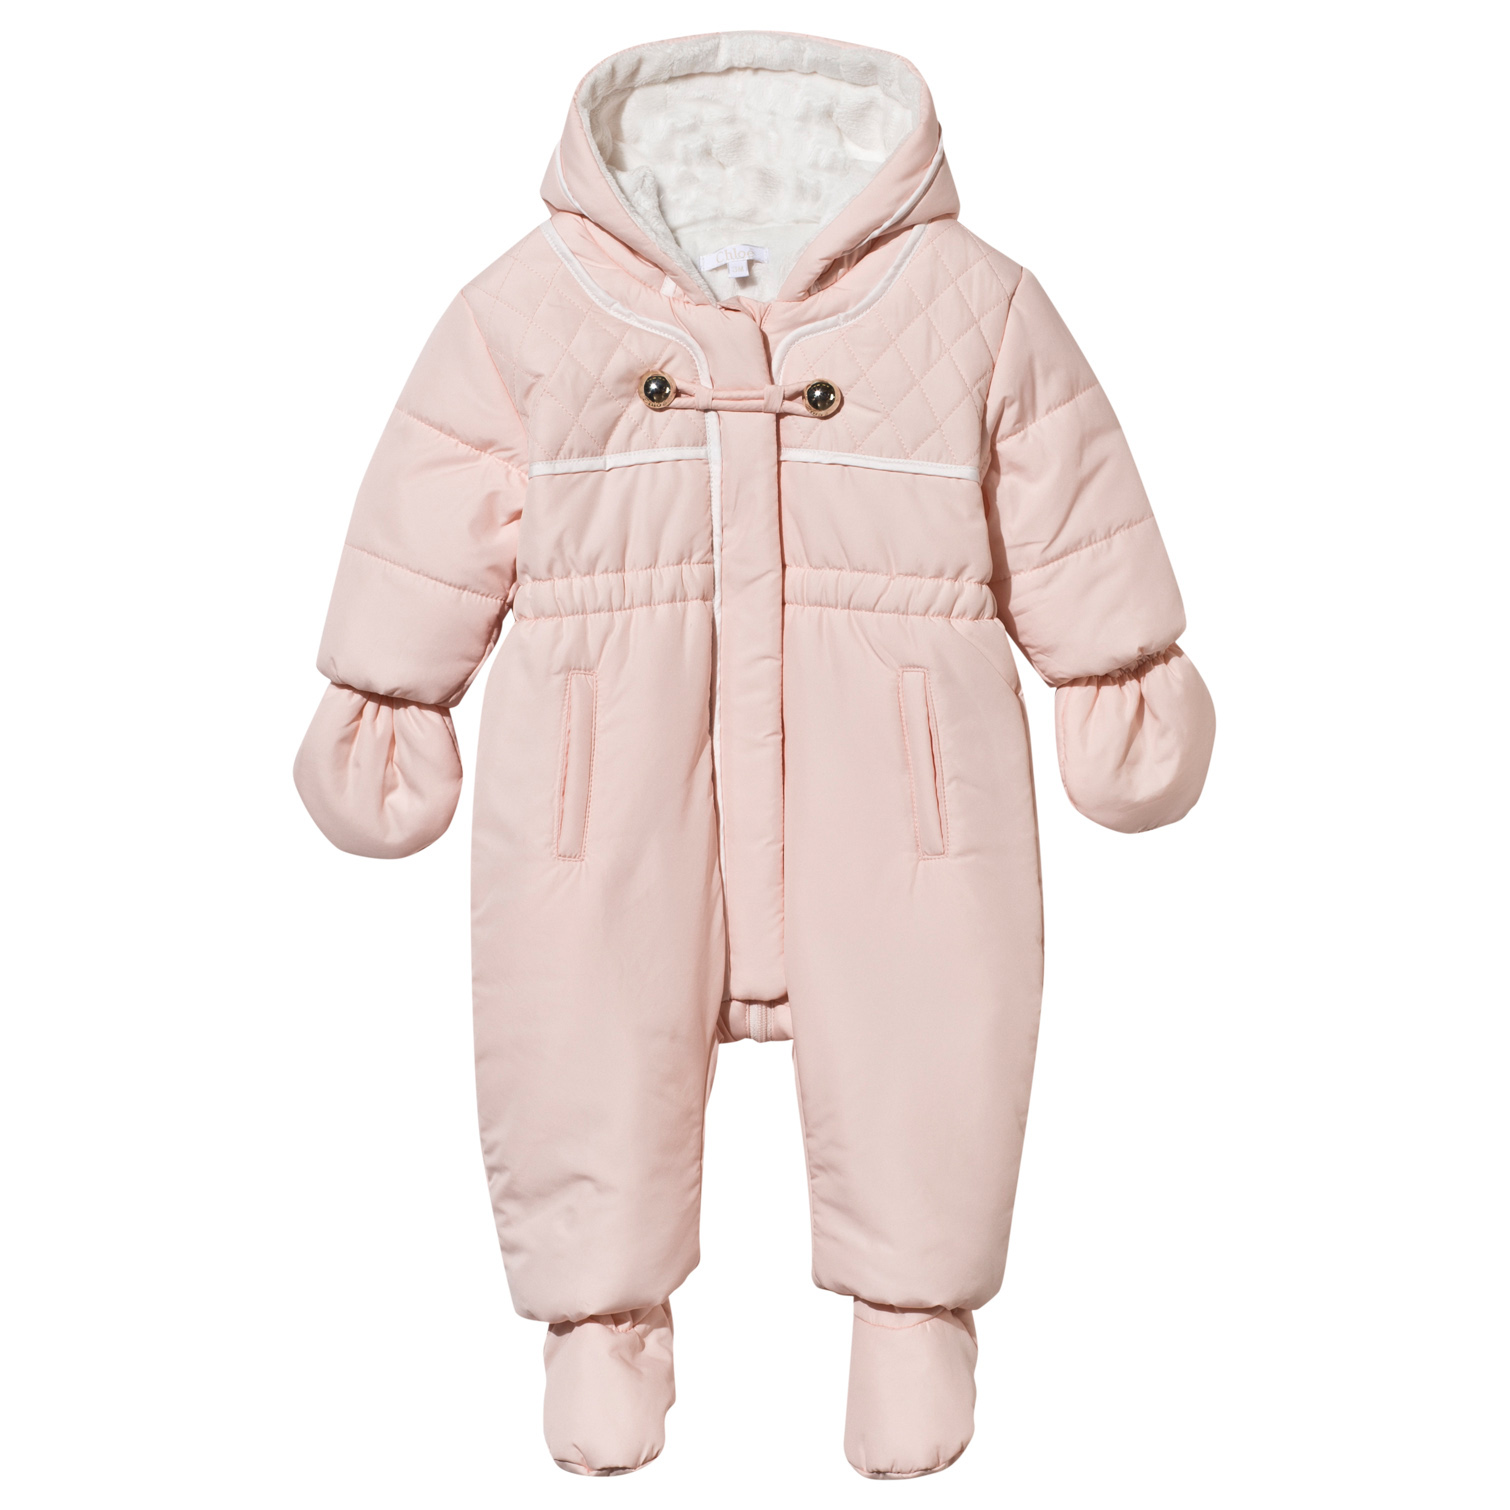 01c2c8b71 Chloé Pink Quilted Snowsuit with Detachable Mittens and Booties ...